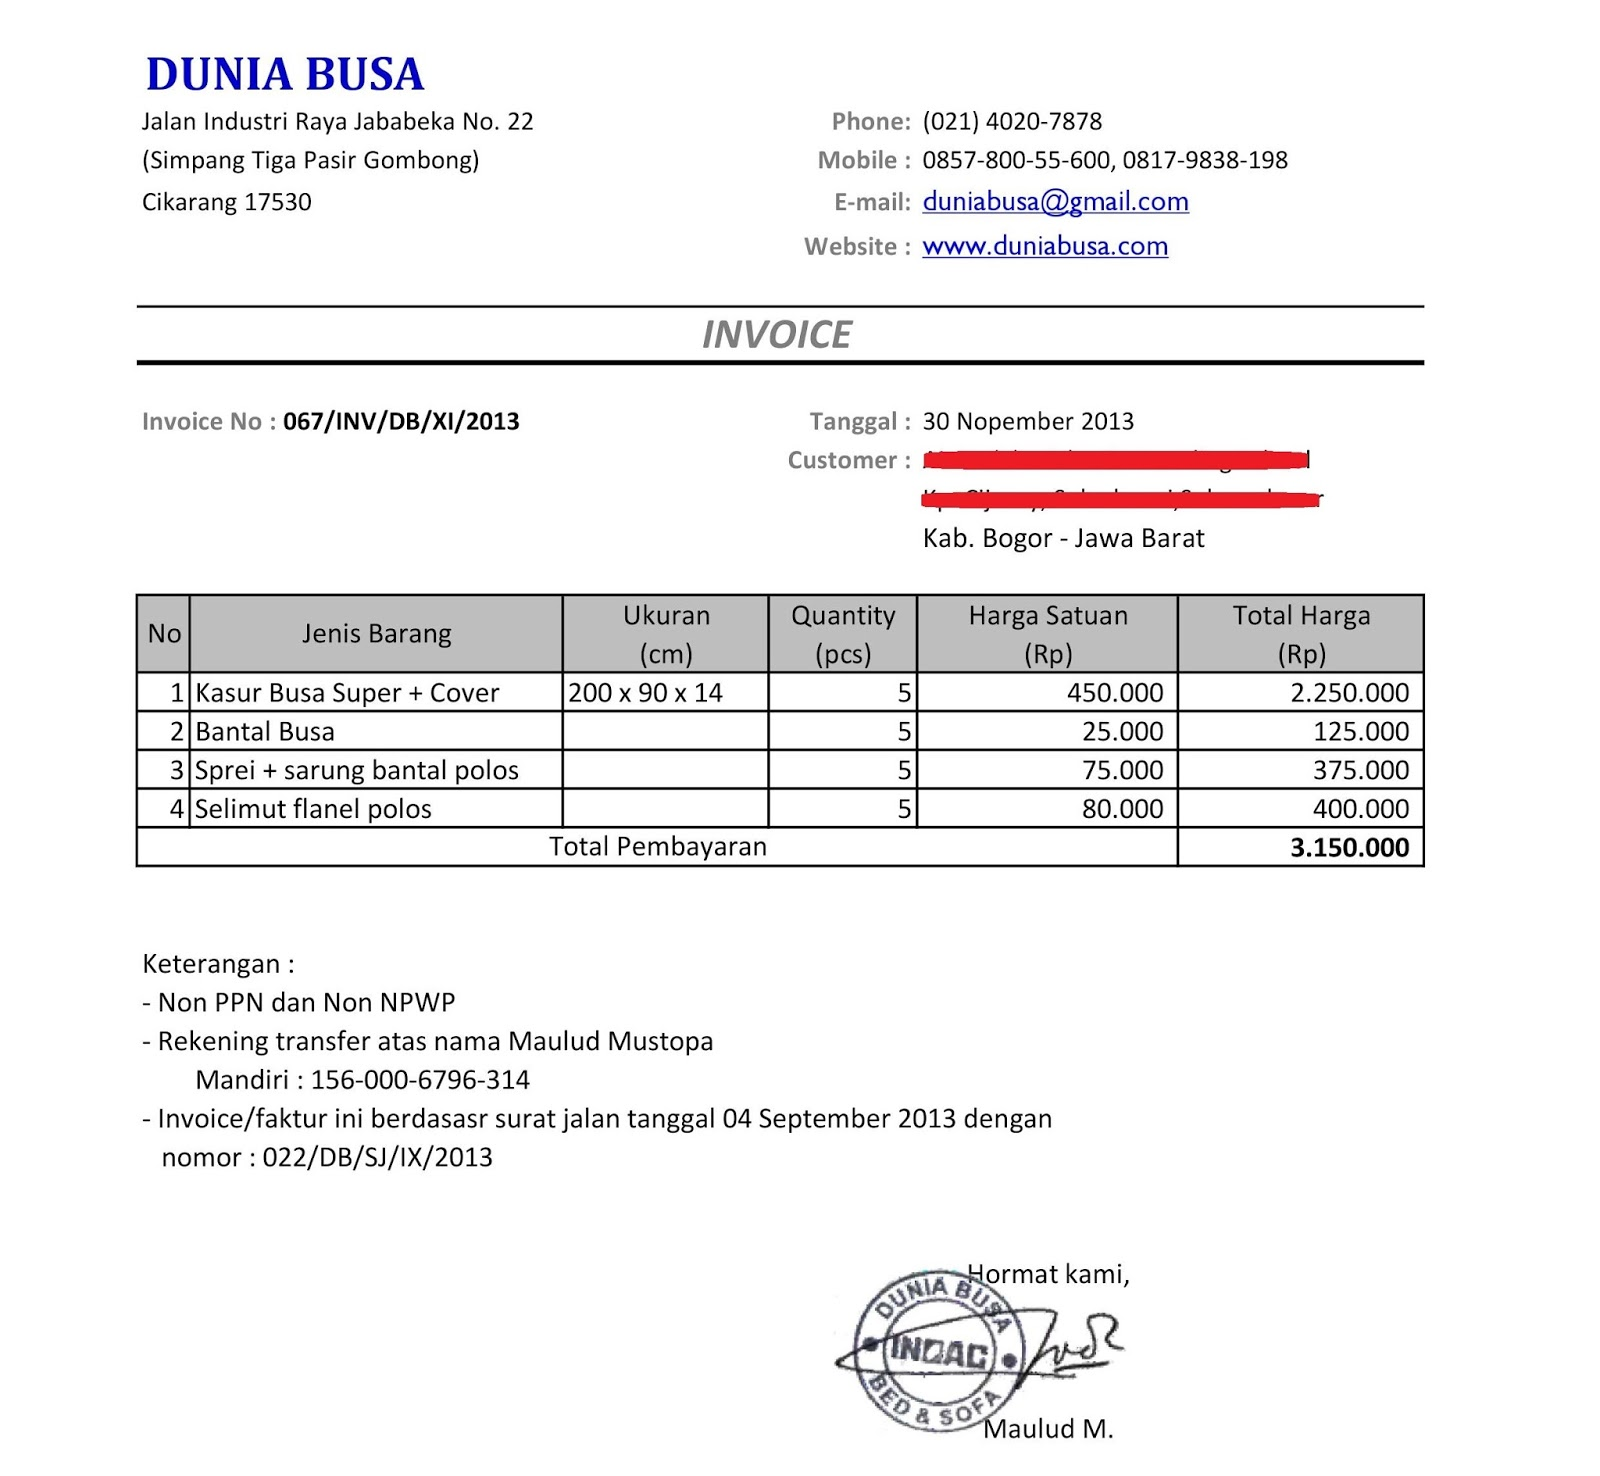 Usdgus  Fascinating Free Invoice Online  Create Invoice Online  Invoice Template  With Lovable Contoh Format Invoice Atau Surat Tagihan  Brankas Arsip  Free Invoice Online With Divine Sephora Exchange Policy No Receipt Also What Is Certified Mail Return Receipt In Addition How To Scan A Receipt And How To Make A Receipt On Word As Well As What Can You Claim On Taxes Without Receipt Additionally Request A Read Receipt From Sklepco With Usdgus  Lovable Free Invoice Online  Create Invoice Online  Invoice Template  With Divine Contoh Format Invoice Atau Surat Tagihan  Brankas Arsip  Free Invoice Online And Fascinating Sephora Exchange Policy No Receipt Also What Is Certified Mail Return Receipt In Addition How To Scan A Receipt From Sklepco